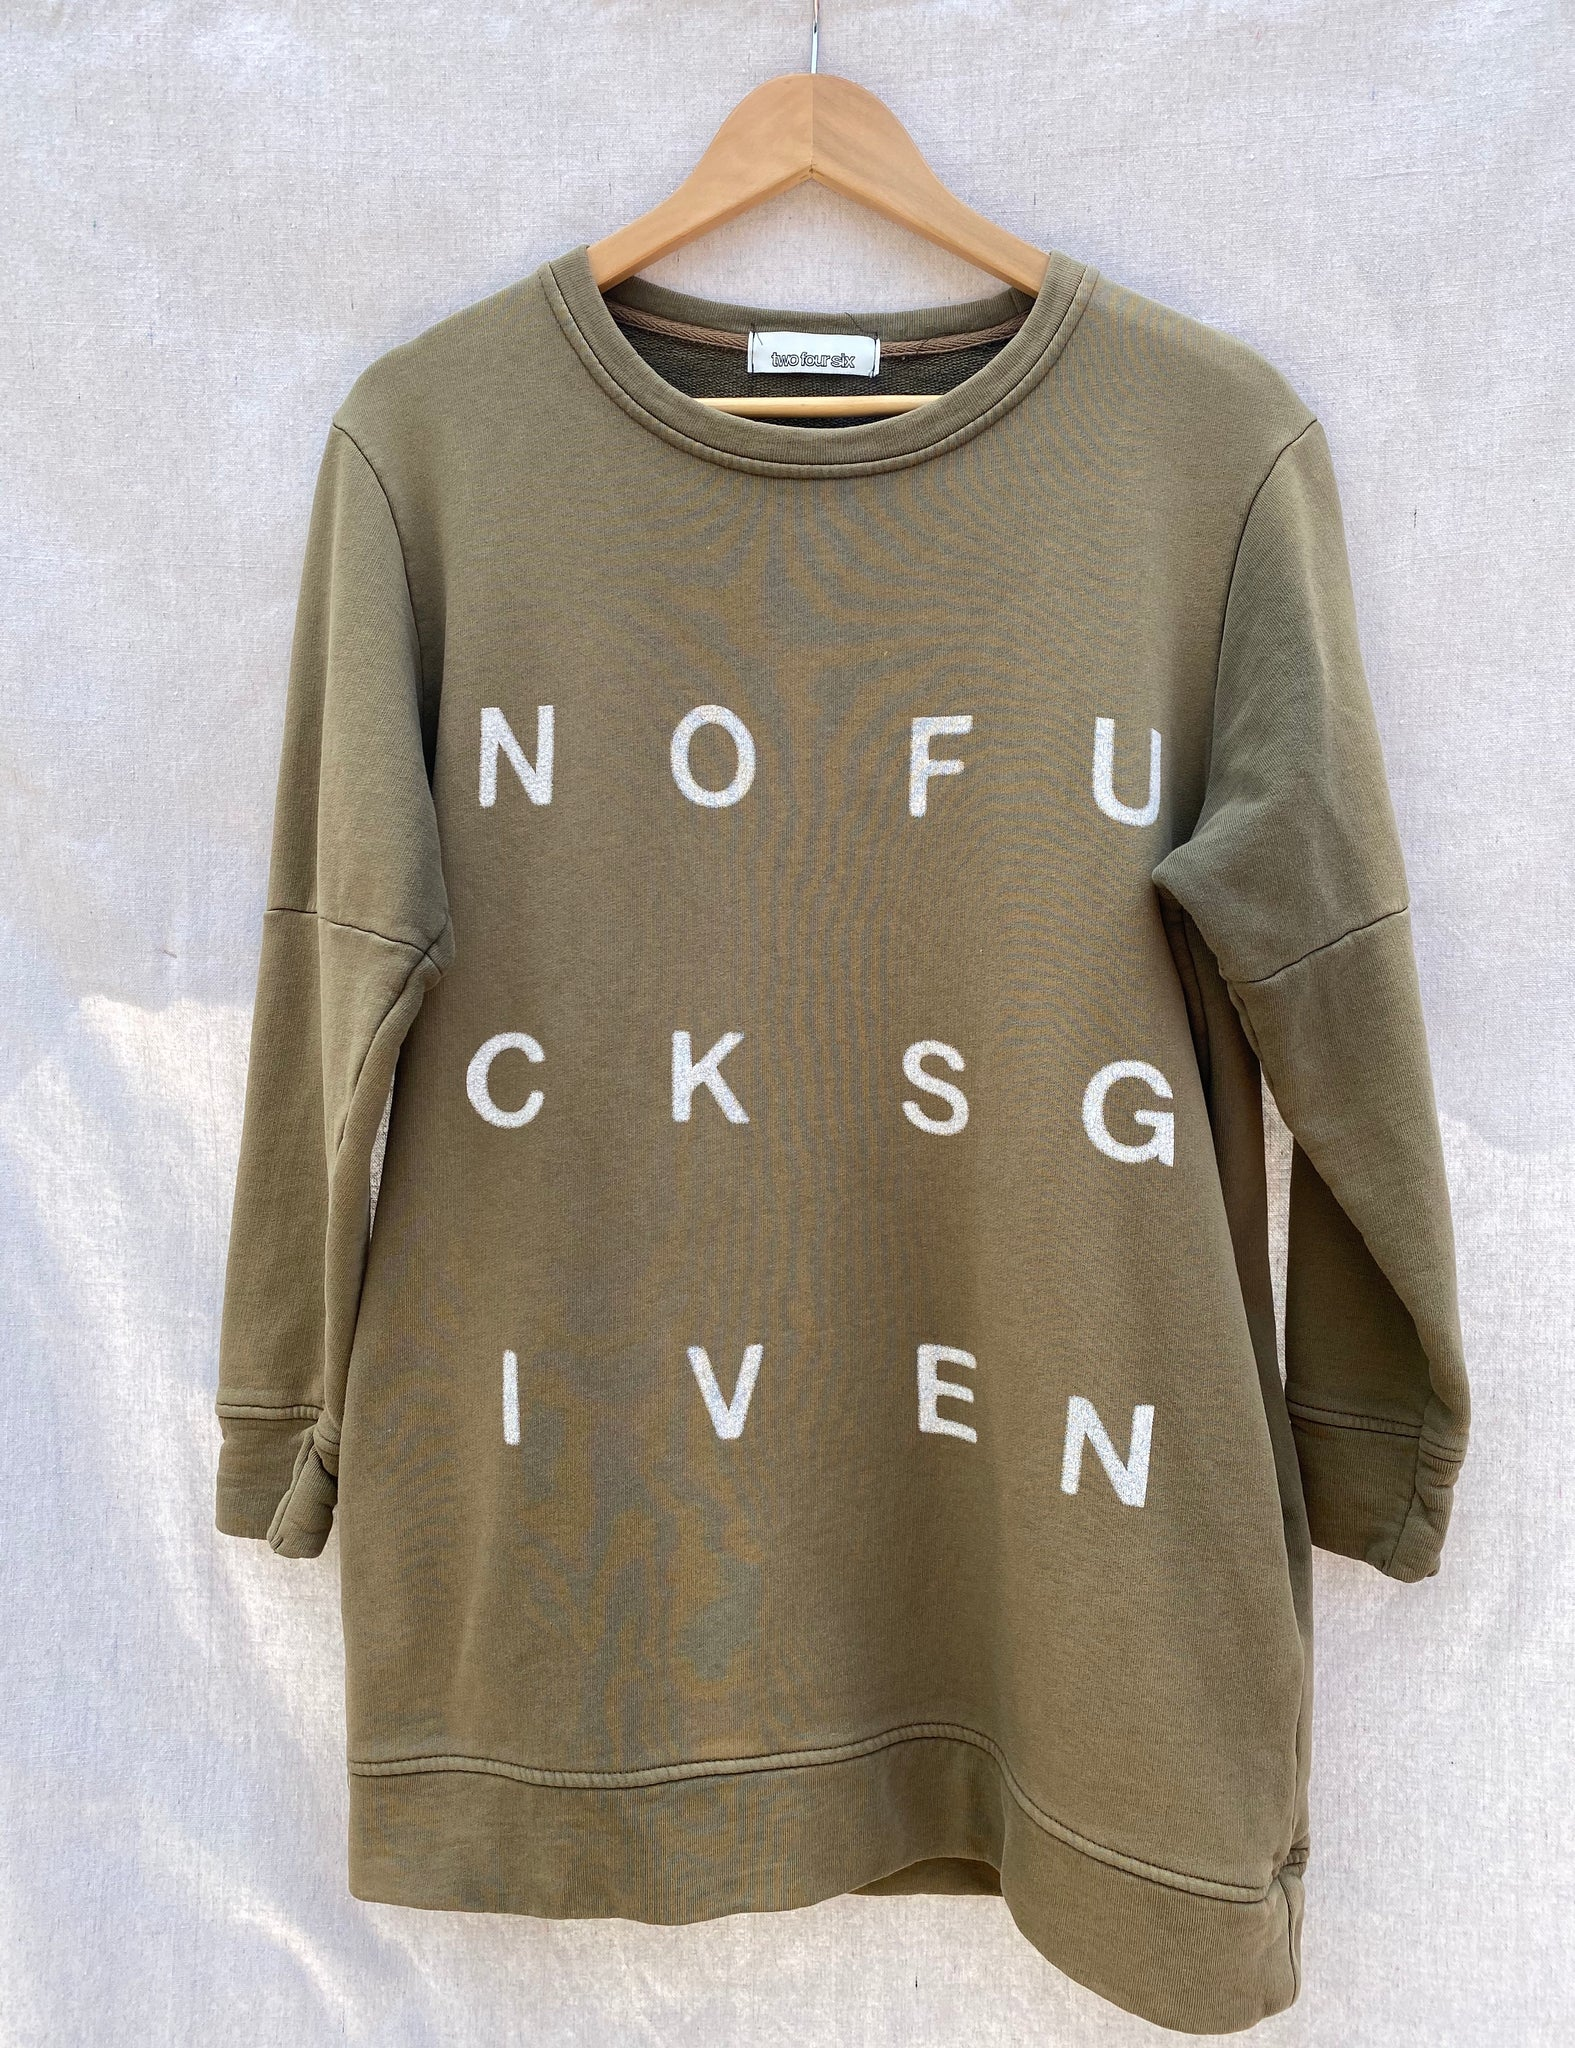 FRONT VIEW OF TUNIC LENGTH SWEATSHIRT WITH NOFUCKSGIVEN PRINT ON IT.